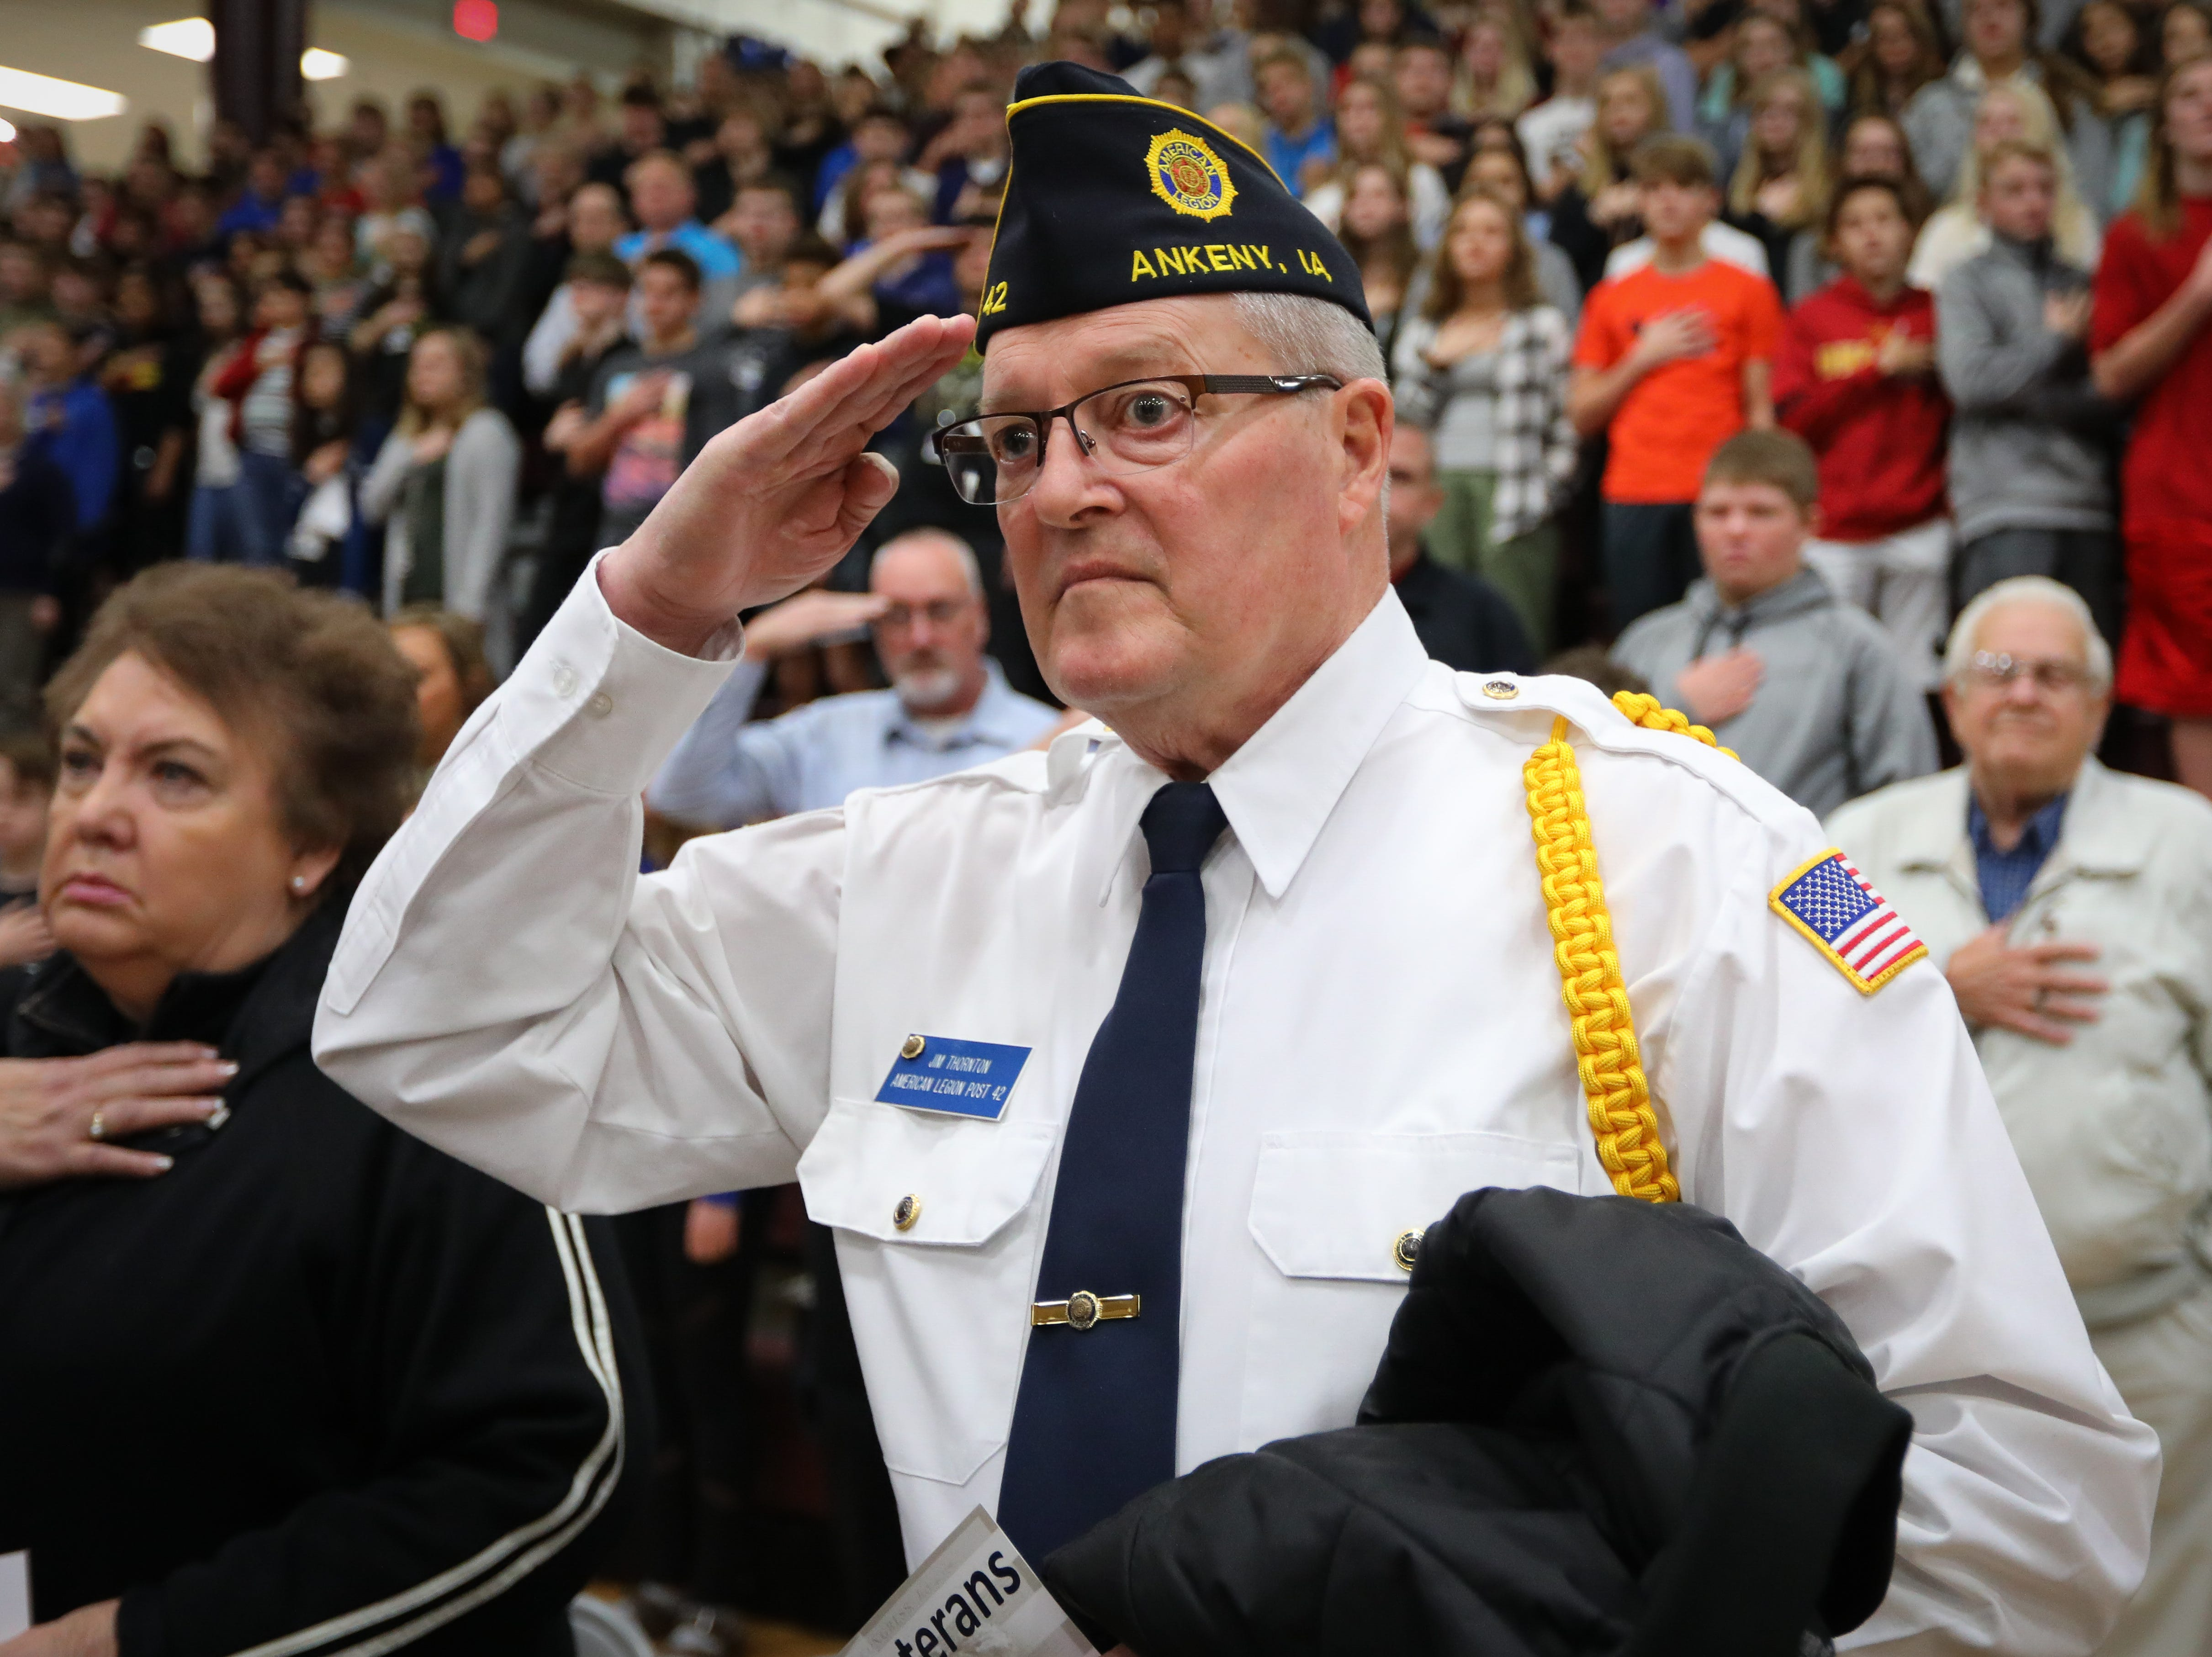 Jim Thorton, from the Navy, salutes during the national anthem during the Veterans Day Breakfast at Northview Middle School on Wednesday, Nov. 14, 2018 in Ankeny, Iowa. Middle school students hosted the veterans to share their gratitude before an assembly.